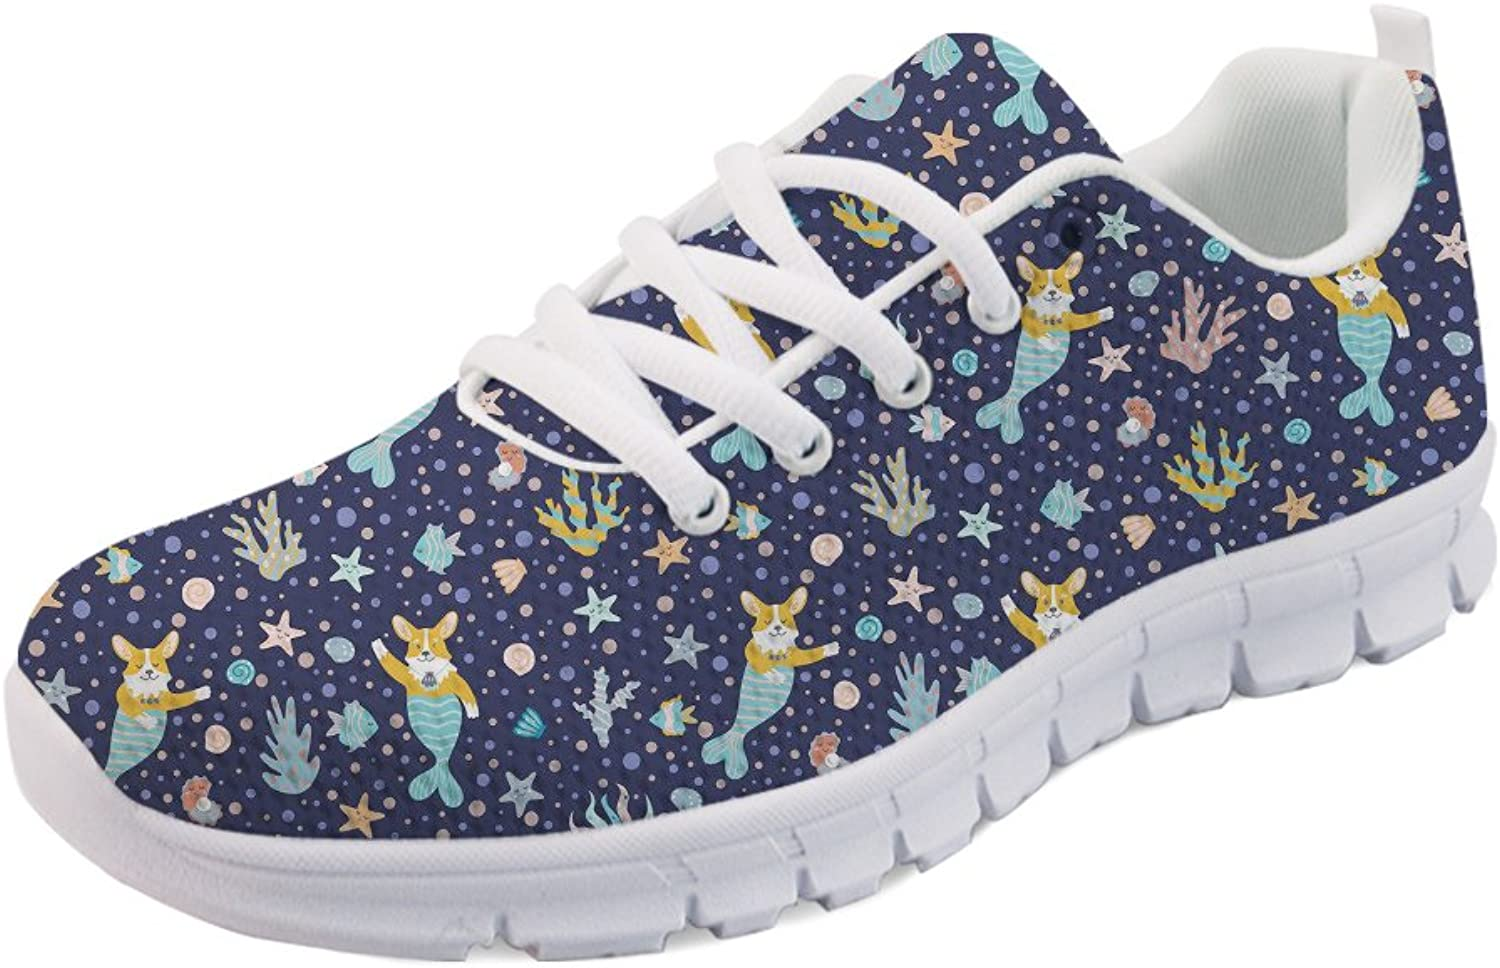 HUGS IDEA Cats Printed Women's Cute Casual Running Sneakers Tennis shoes